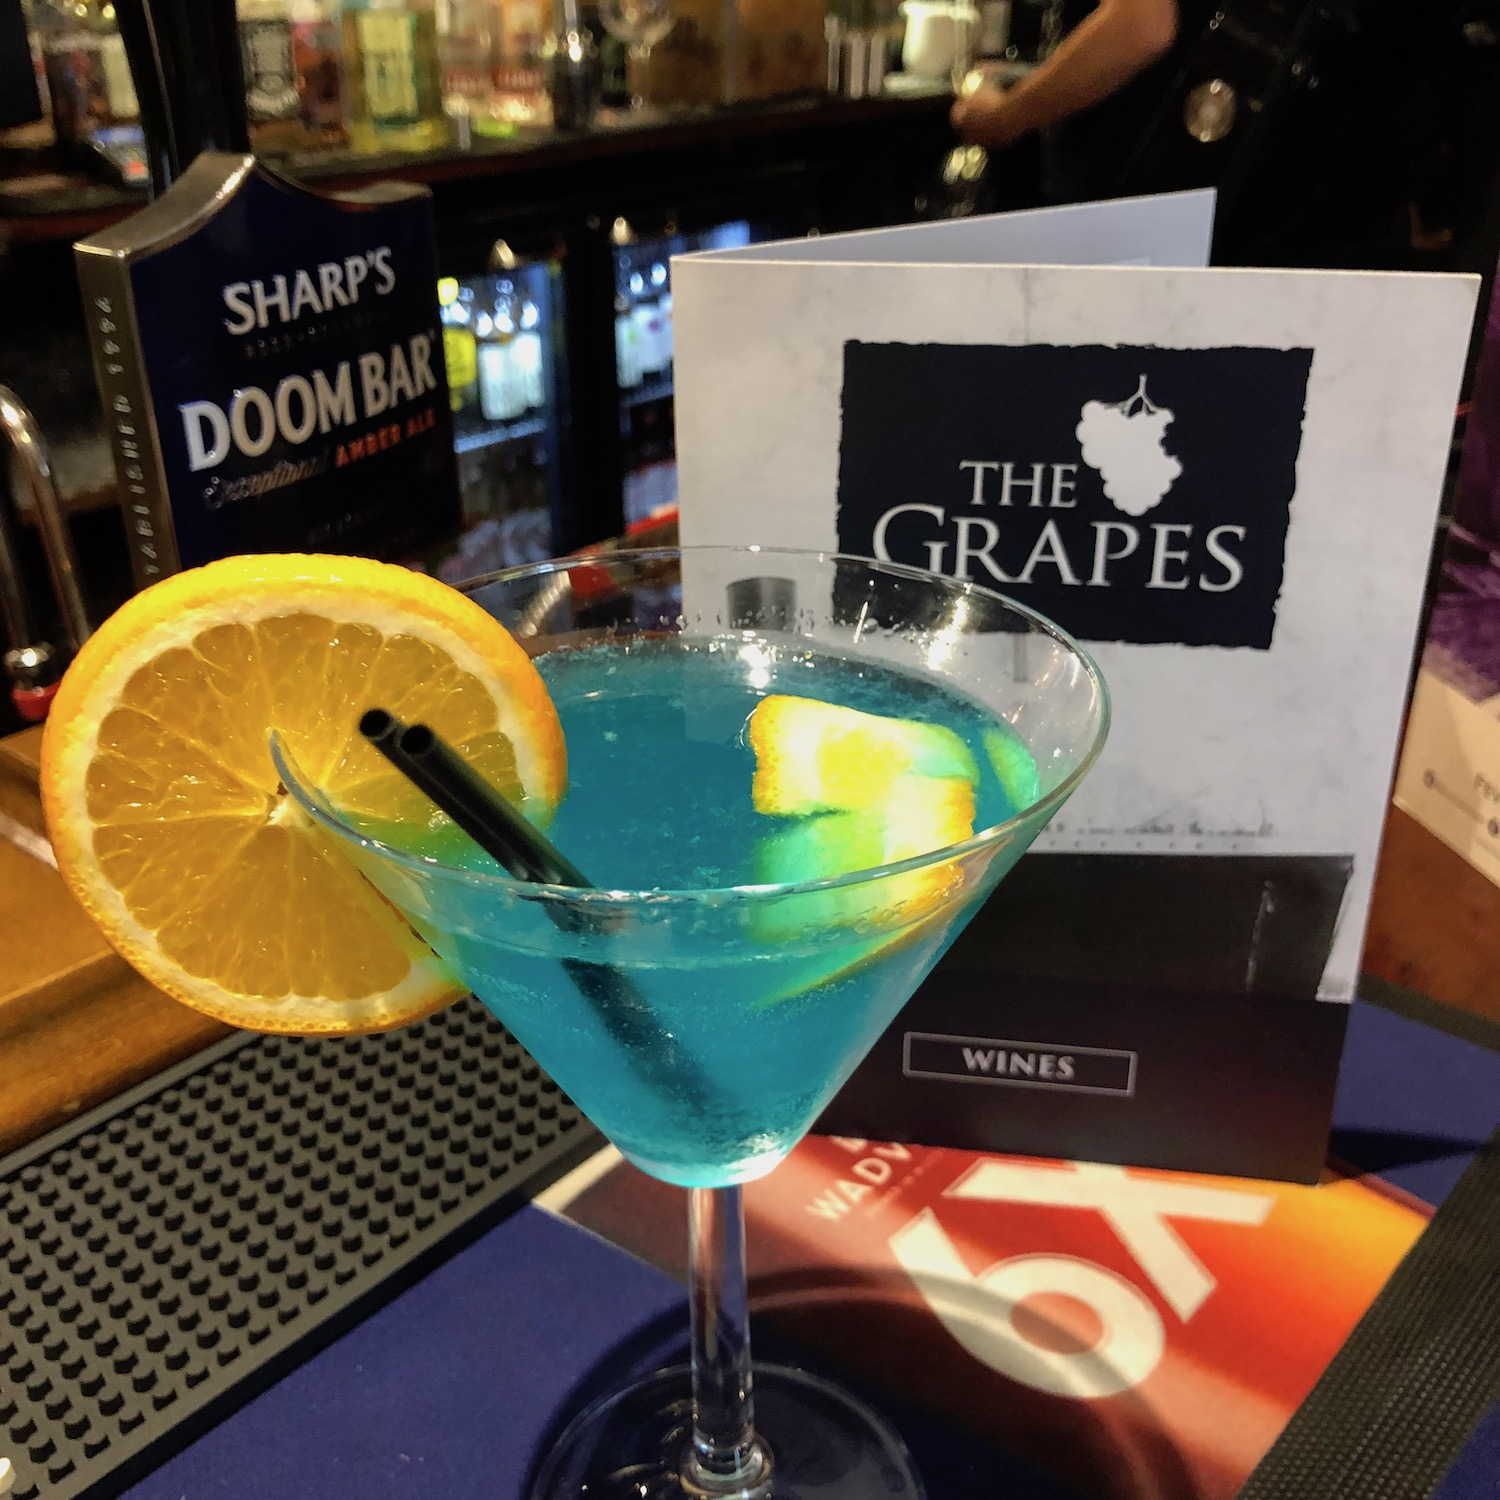 The Sapphire Princess cocktail at The Grapes pub Southampton